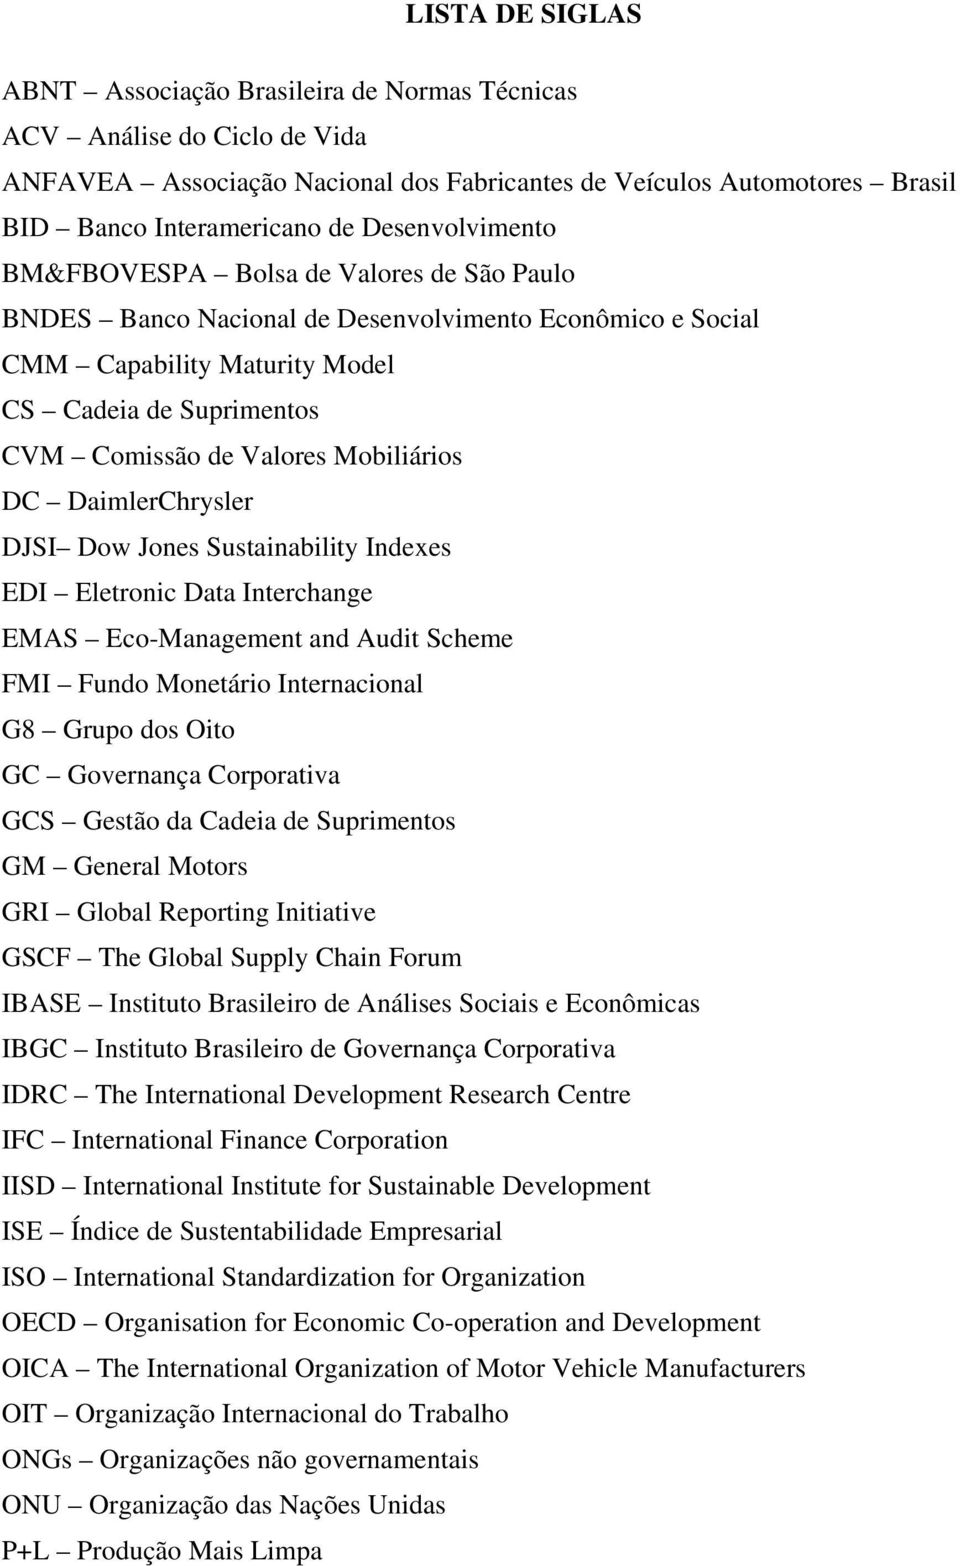 Mobiliários DC DaimlerChrysler DJSI Dow Jones Sustainability Indexes EDI Eletronic Data Interchange EMAS Eco-Management and Audit Scheme FMI Fundo Monetário Internacional G8 Grupo dos Oito GC